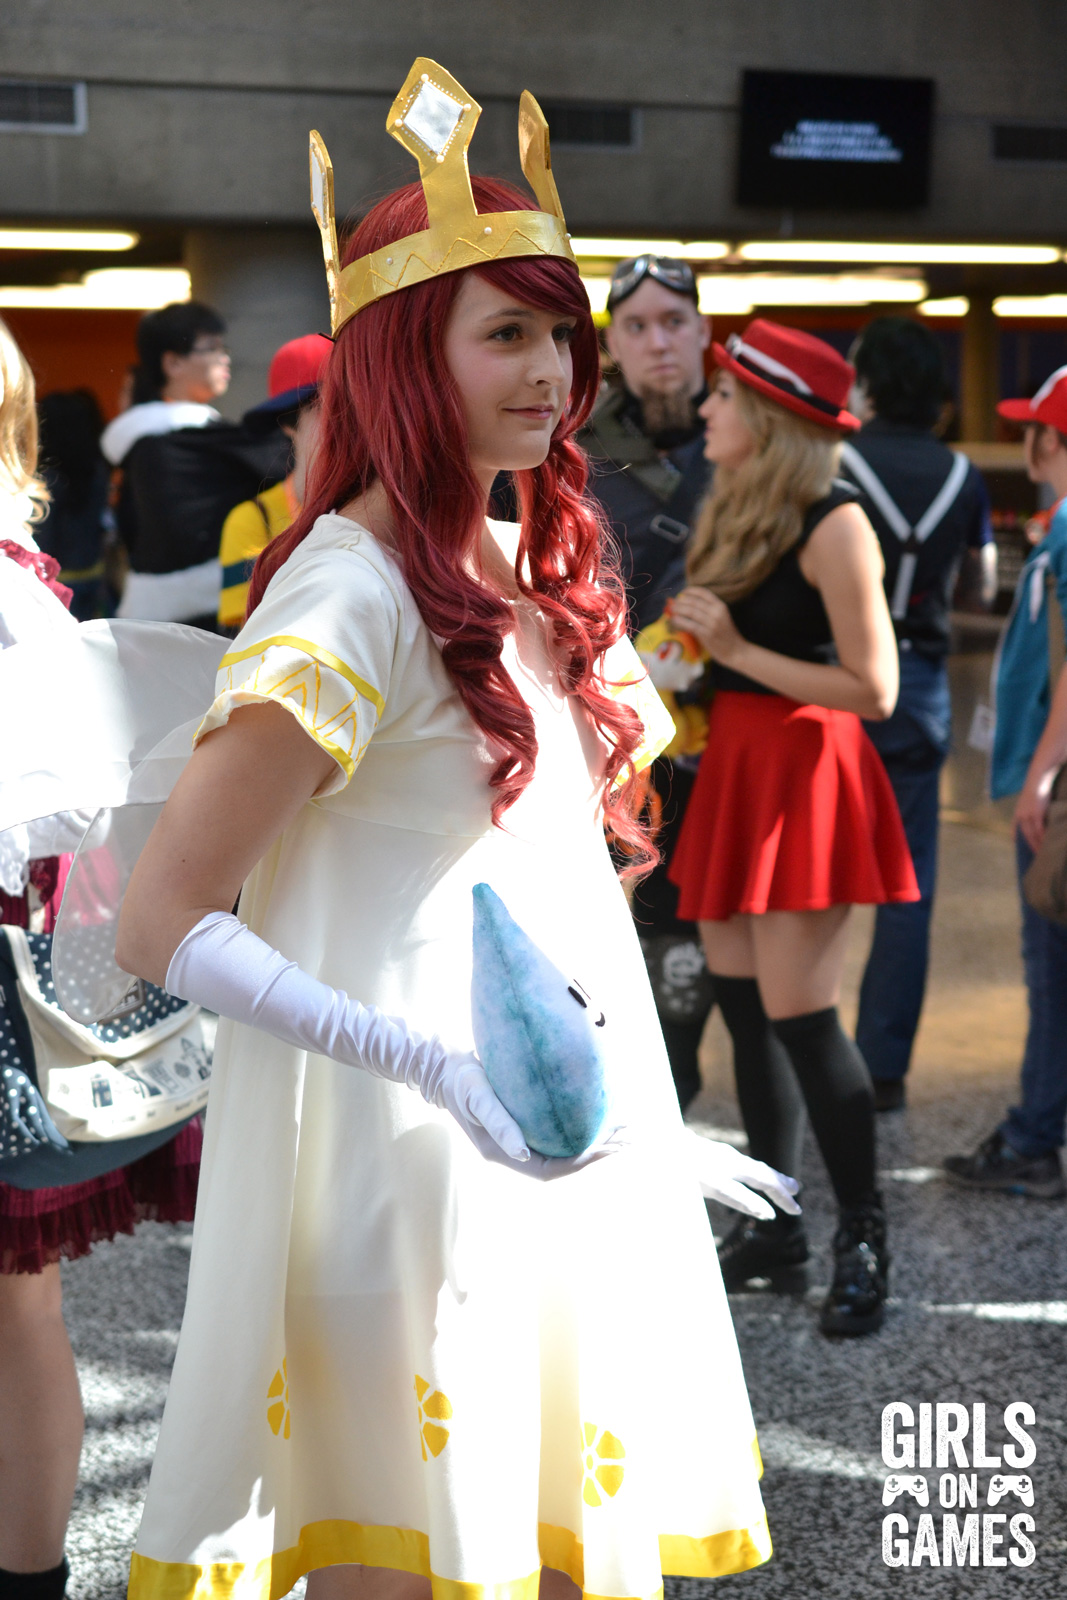 Aurora (Child of Light) cosplay at Otakuthon 2015